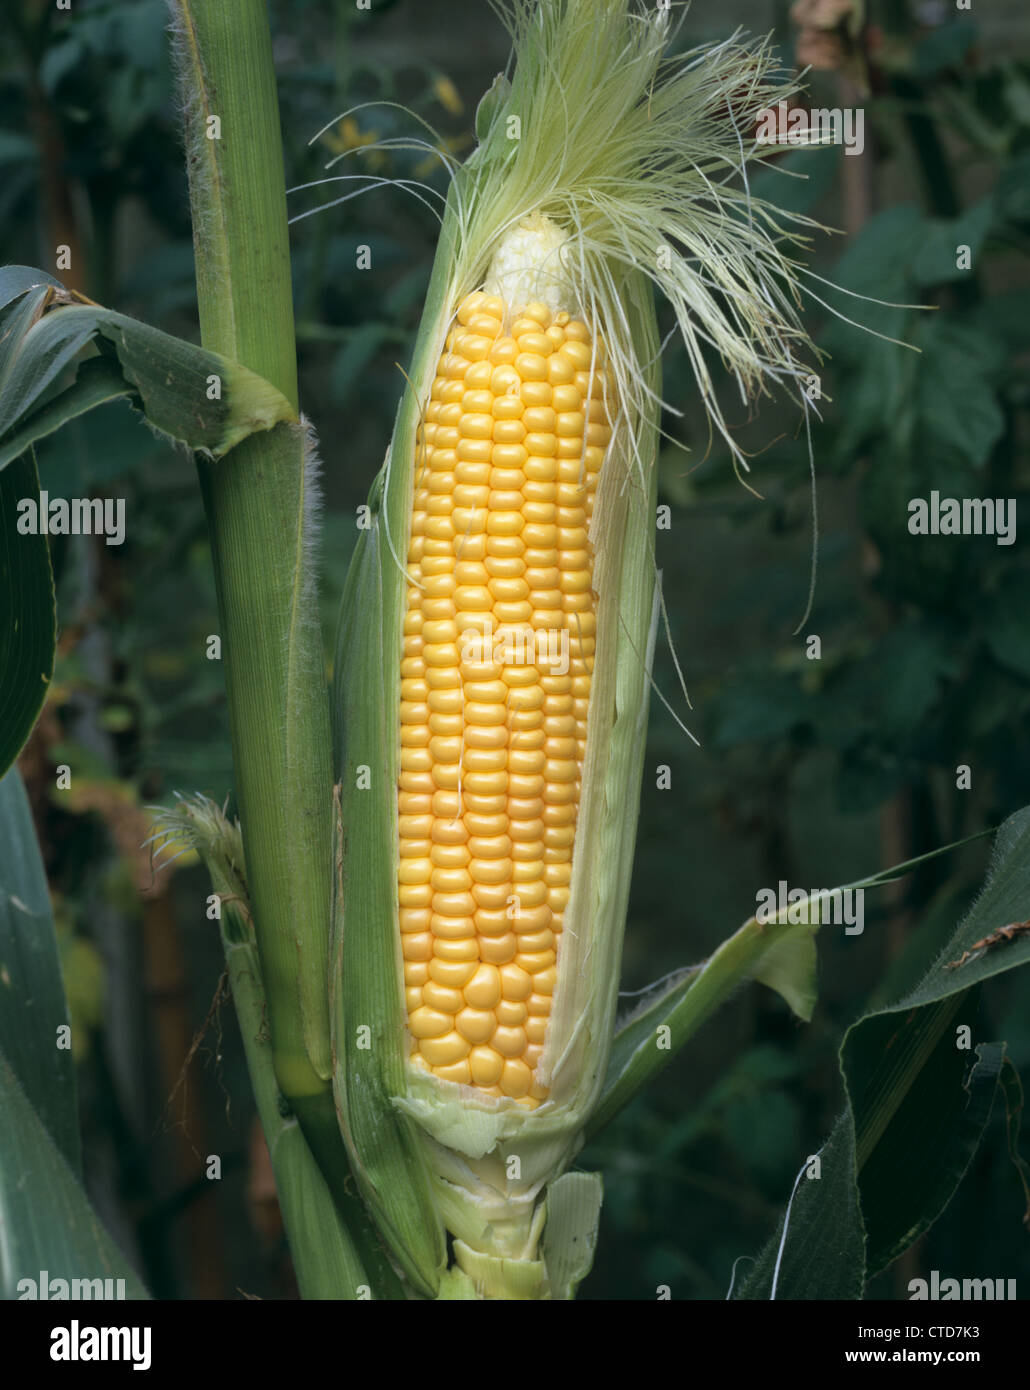 Large ripe sweet corn cob (Zea mays) exposed to show grains on the plant - Stock Image